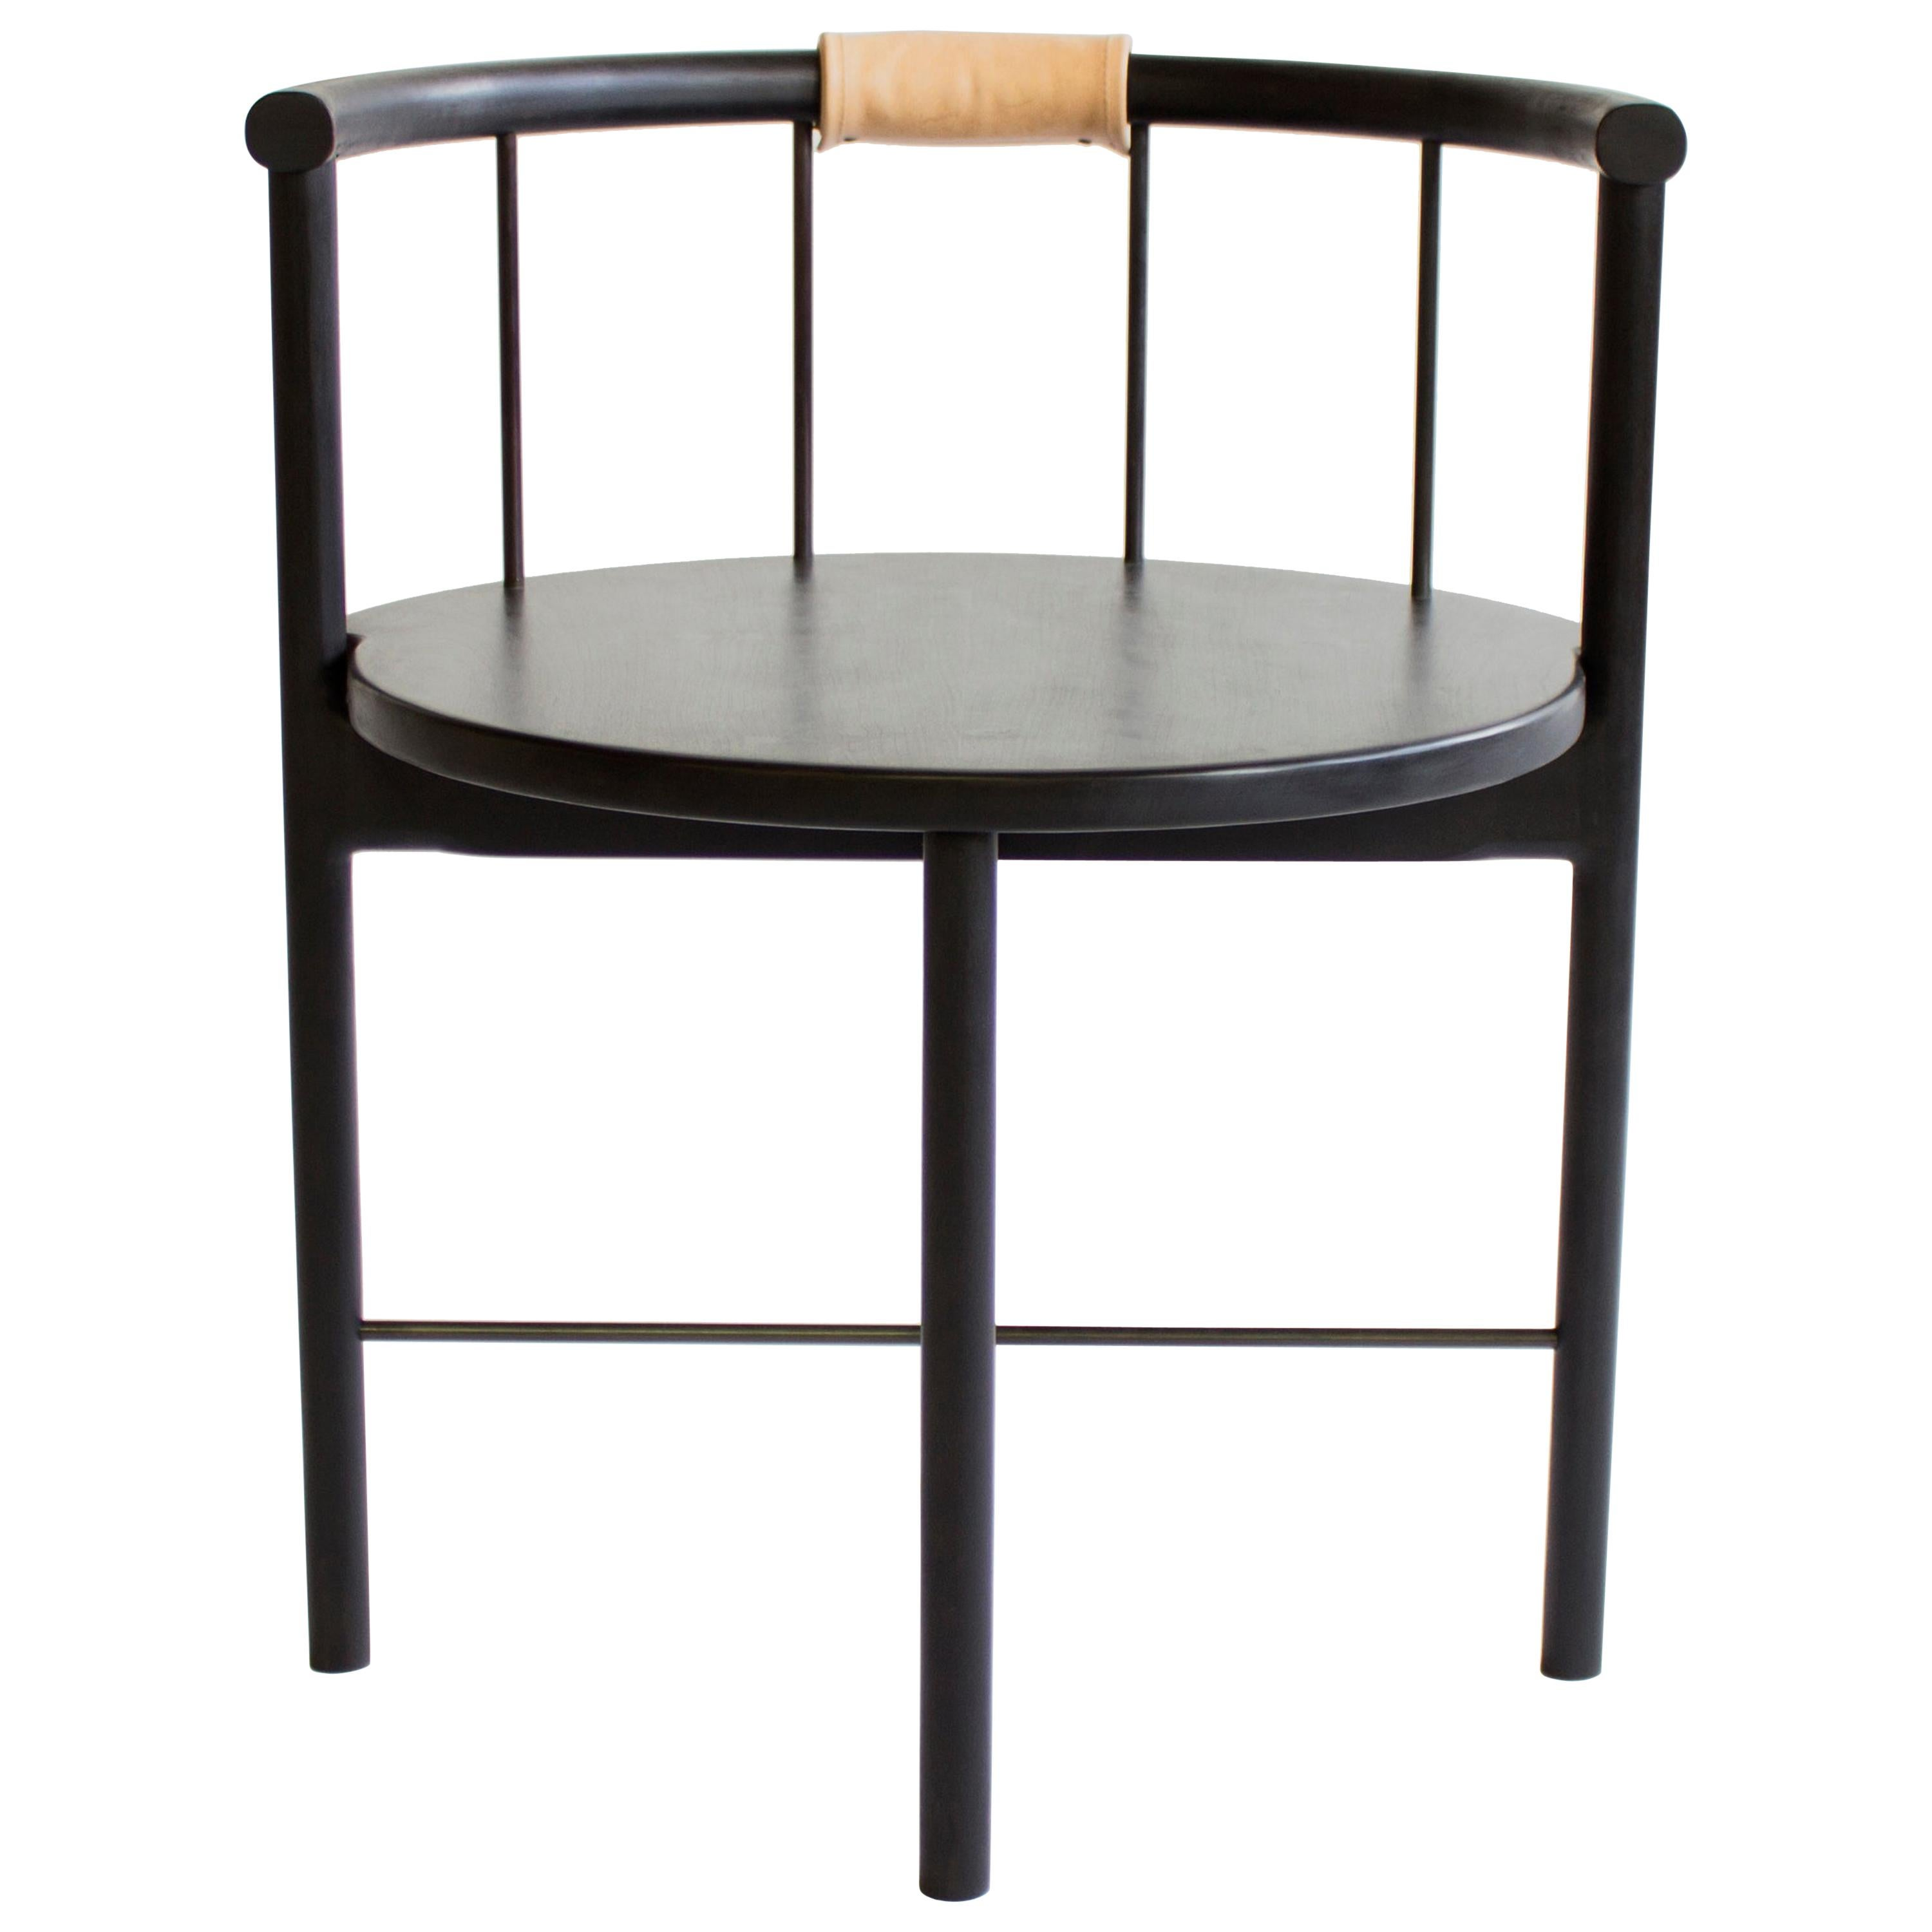 Blackened Oak Barrel-Backed Dining Chair, Brass or Bronze Rungs, Leather Grip